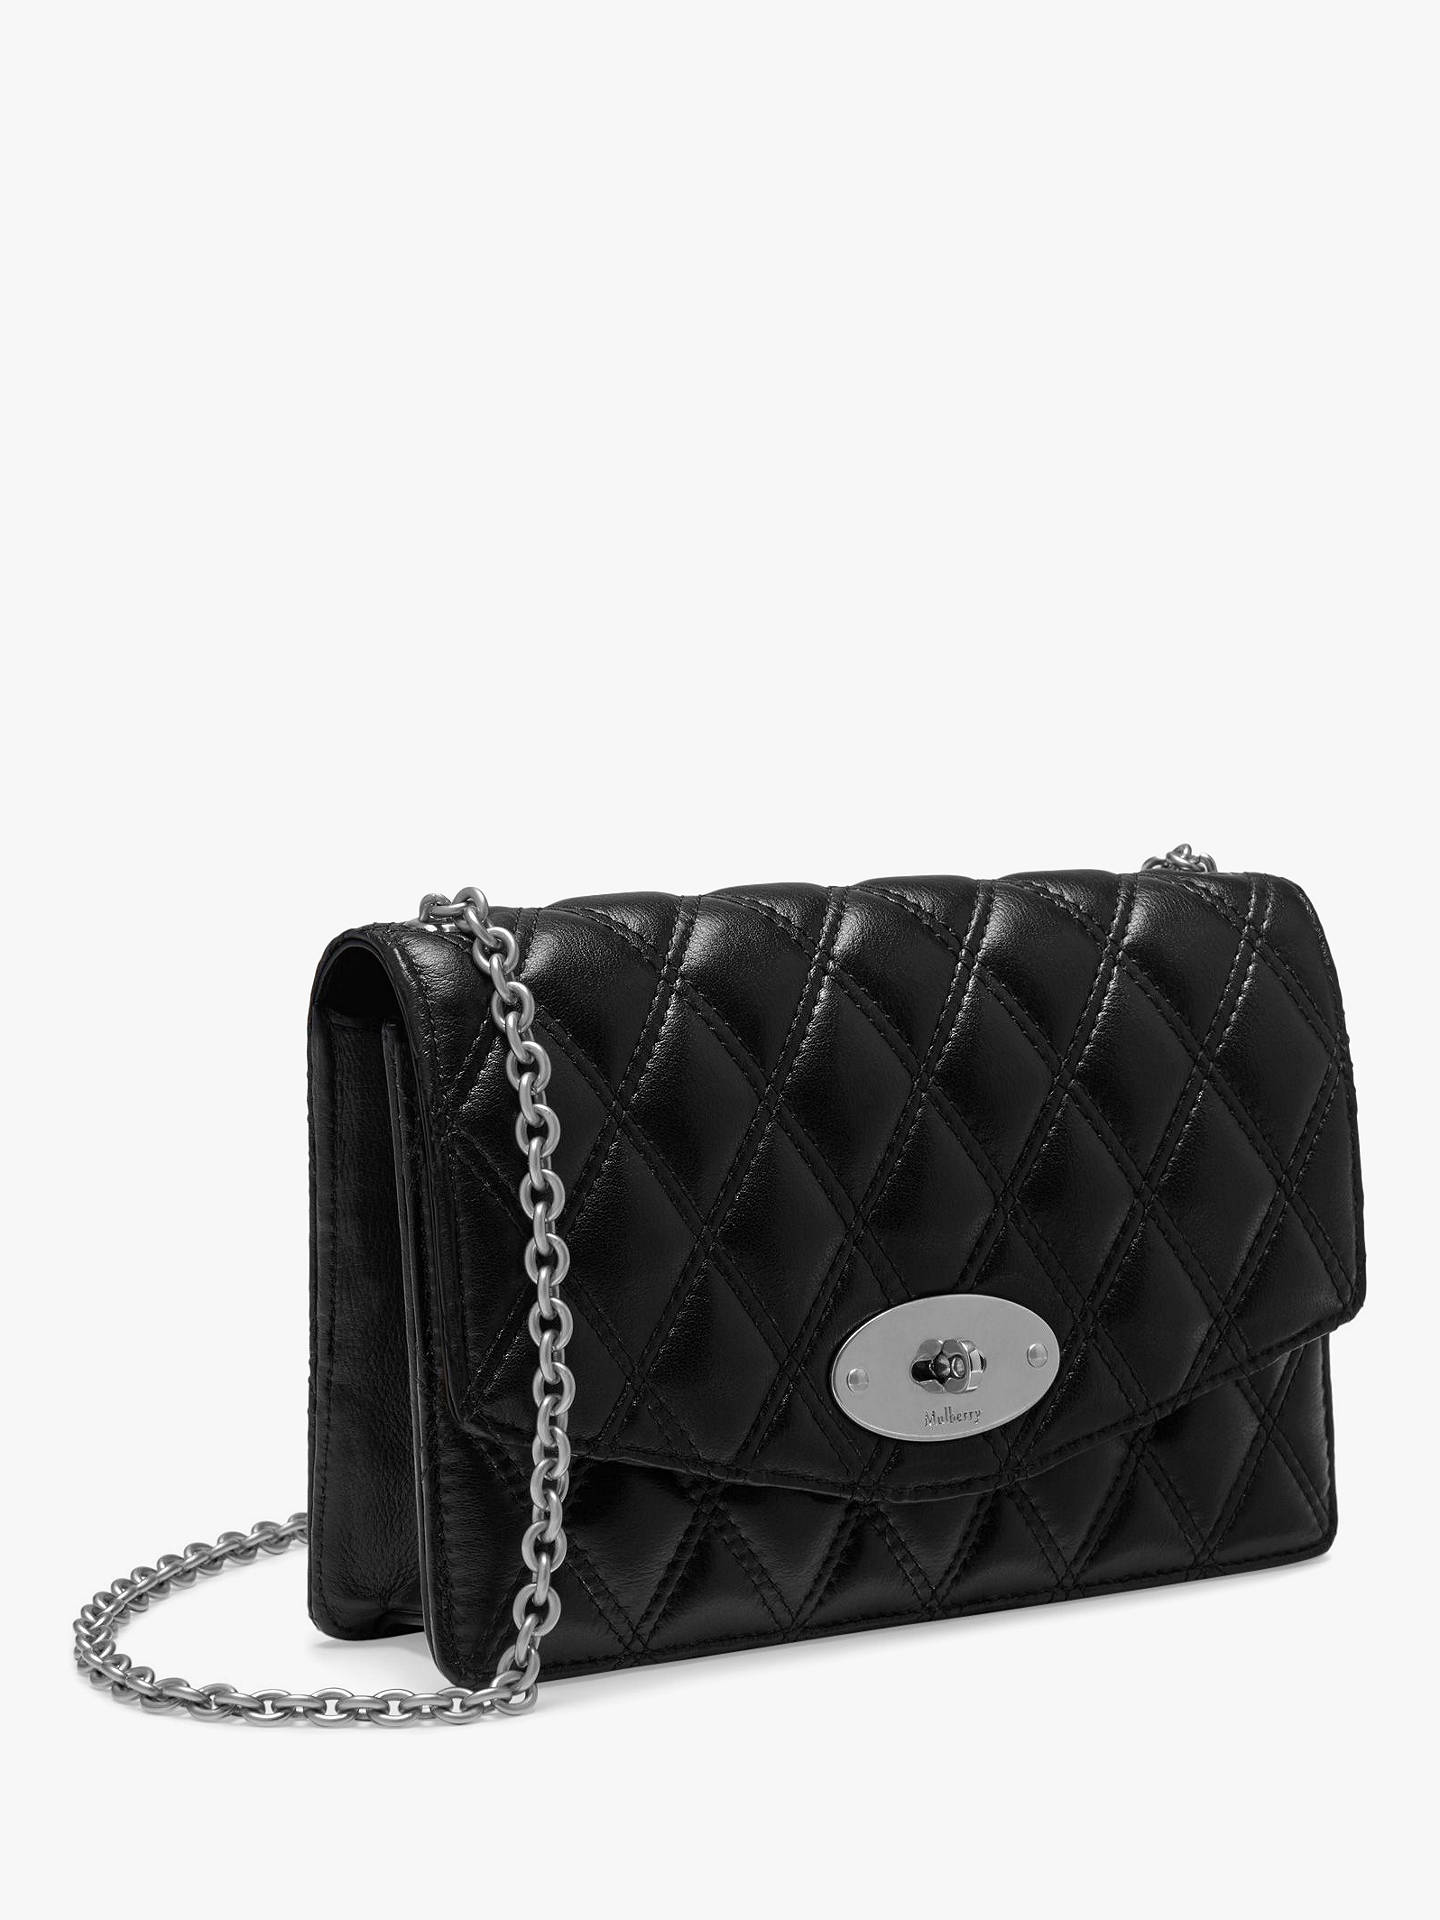 f89f4604f5 Buy Mulberry Small Darley Quilted Smooth Calf Chain Clutch Bag